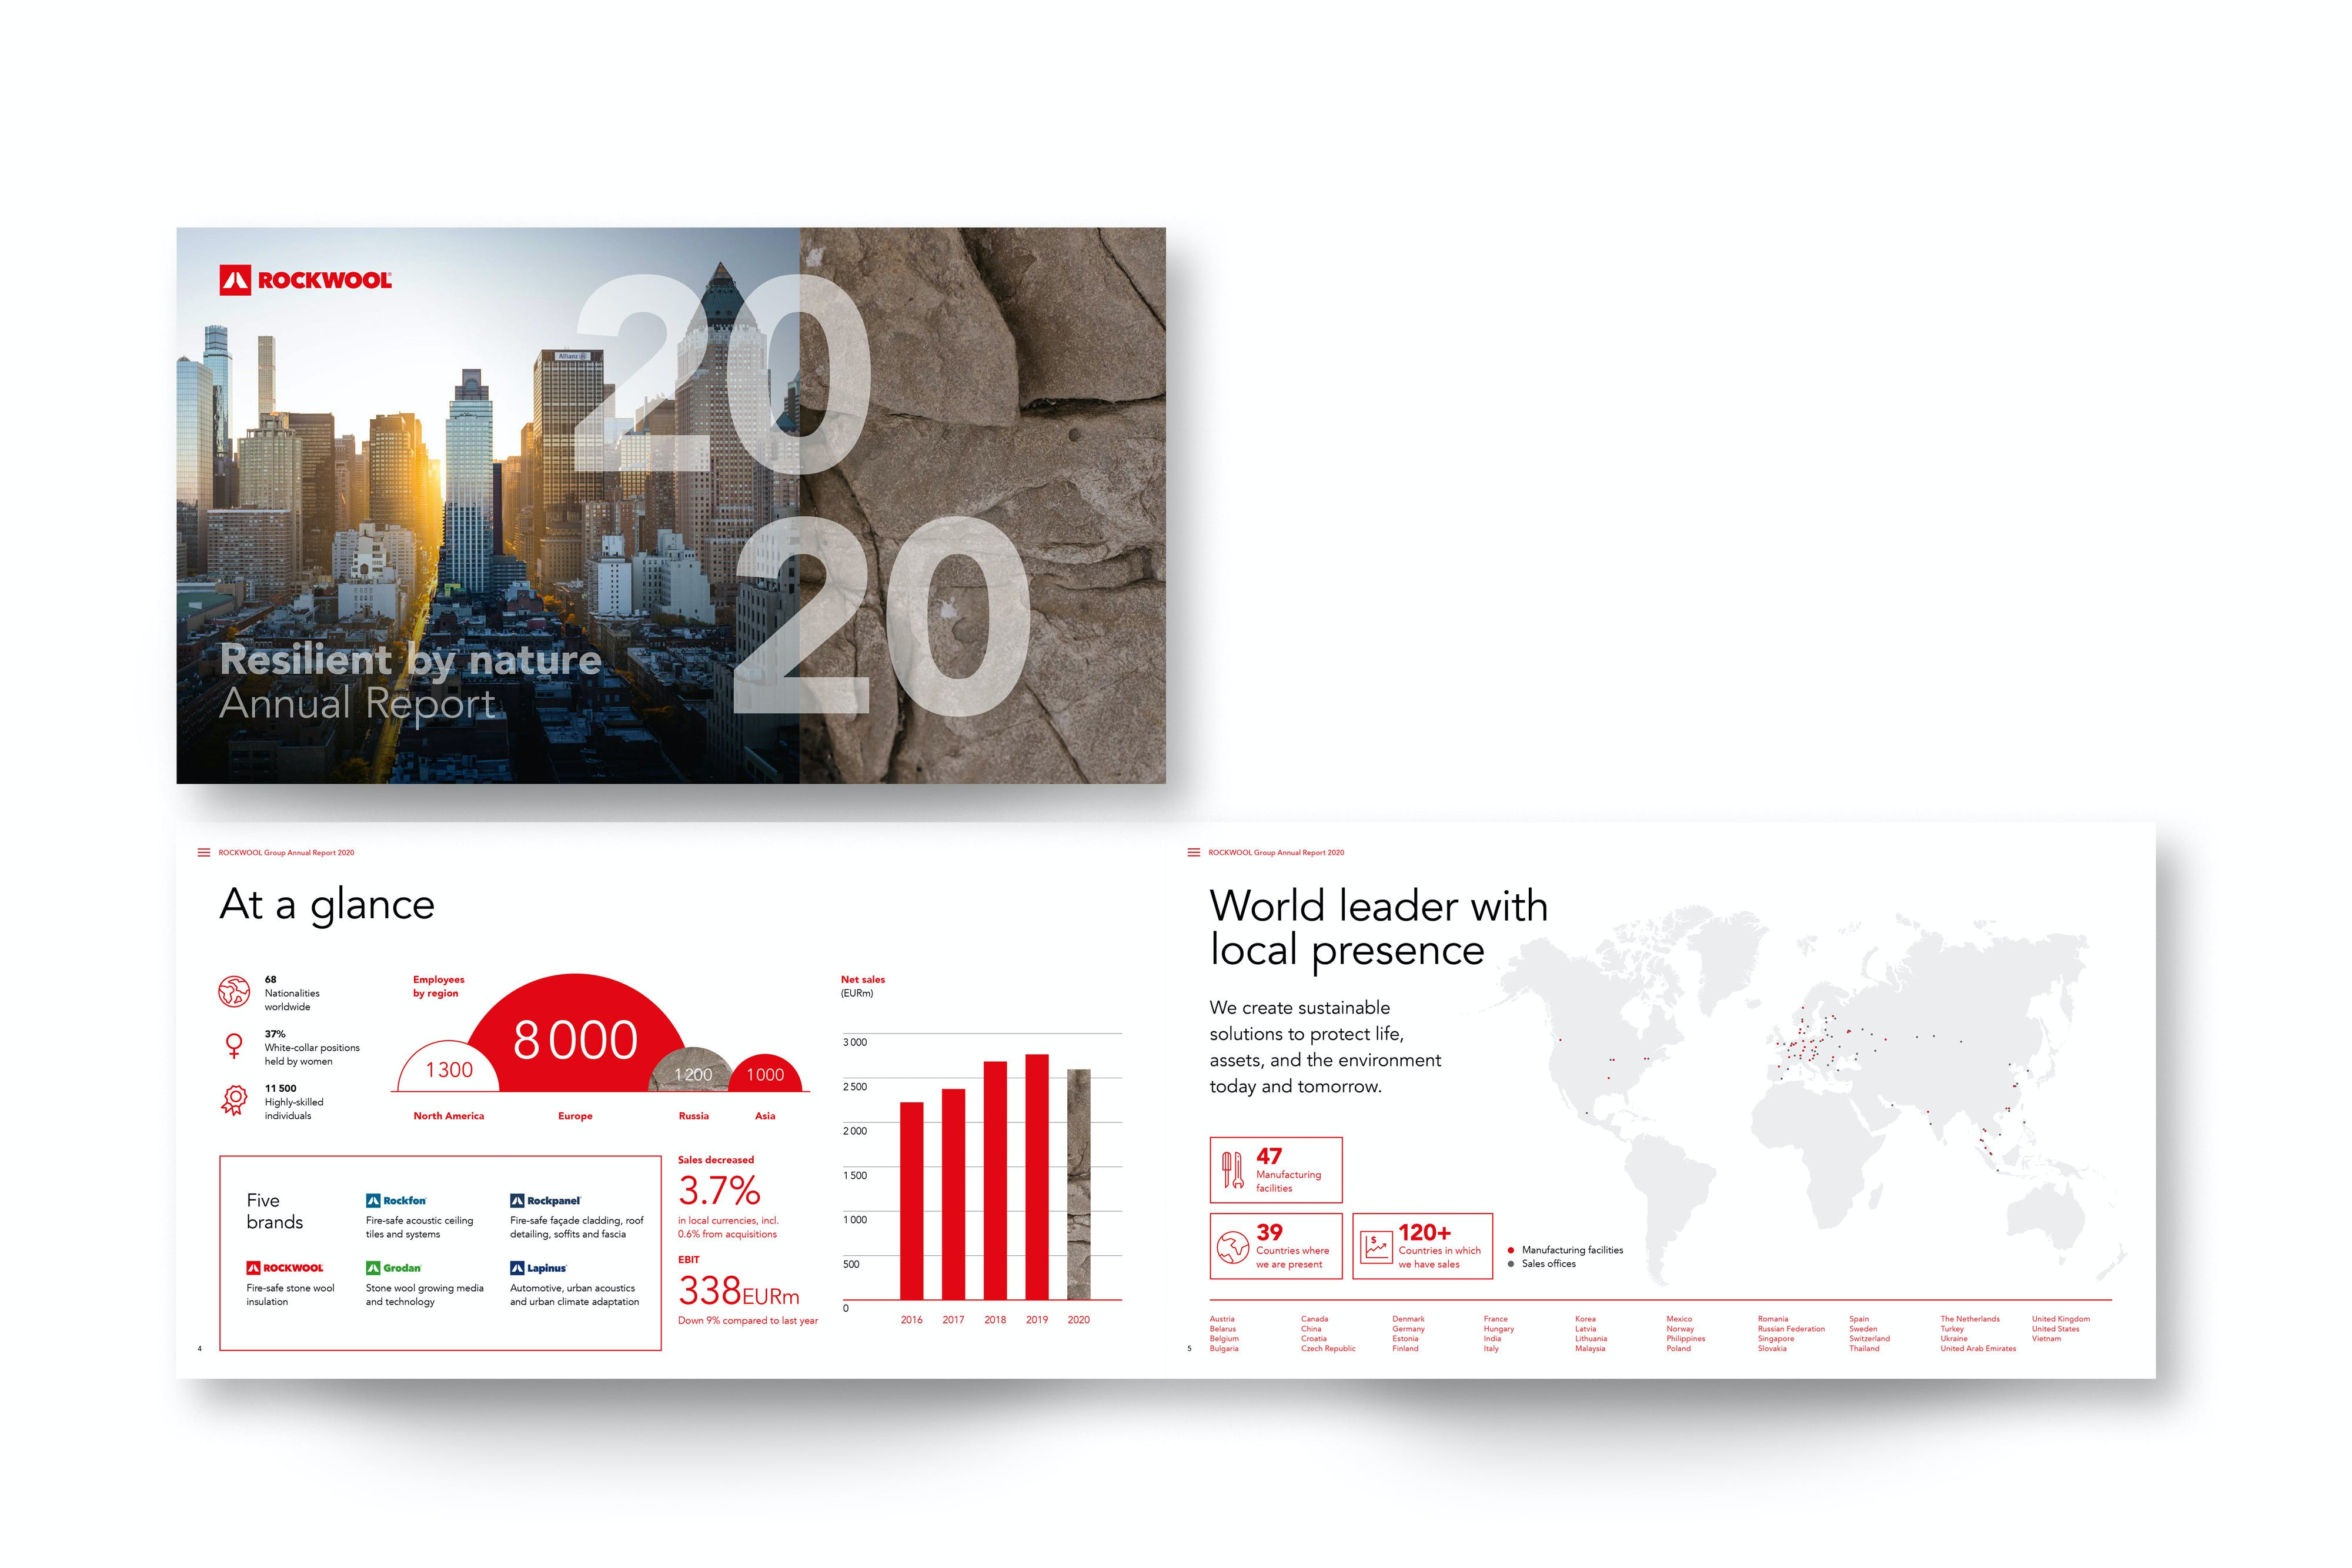 AR 2020, Annual Report 2020, cover, at a glance